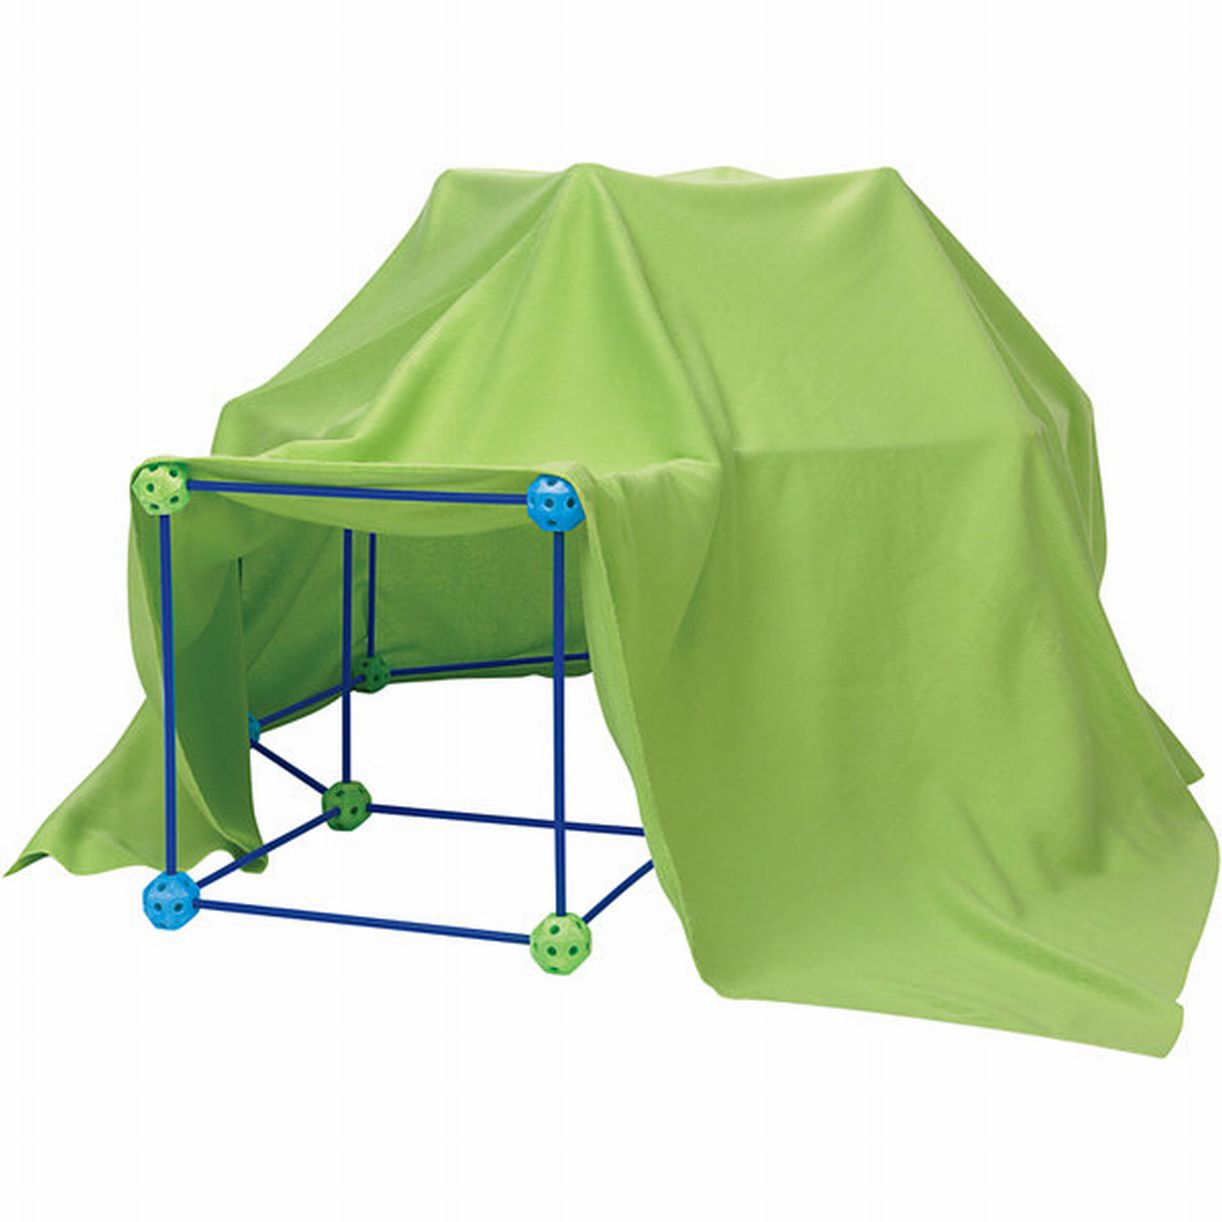 Discovery Kids 77-piece Build and Play Construction Fort Set Playhouse Play Tent  sc 1 st  Walmart & Discovery Kids 77-piece Build and Play Construction Fort Set ...